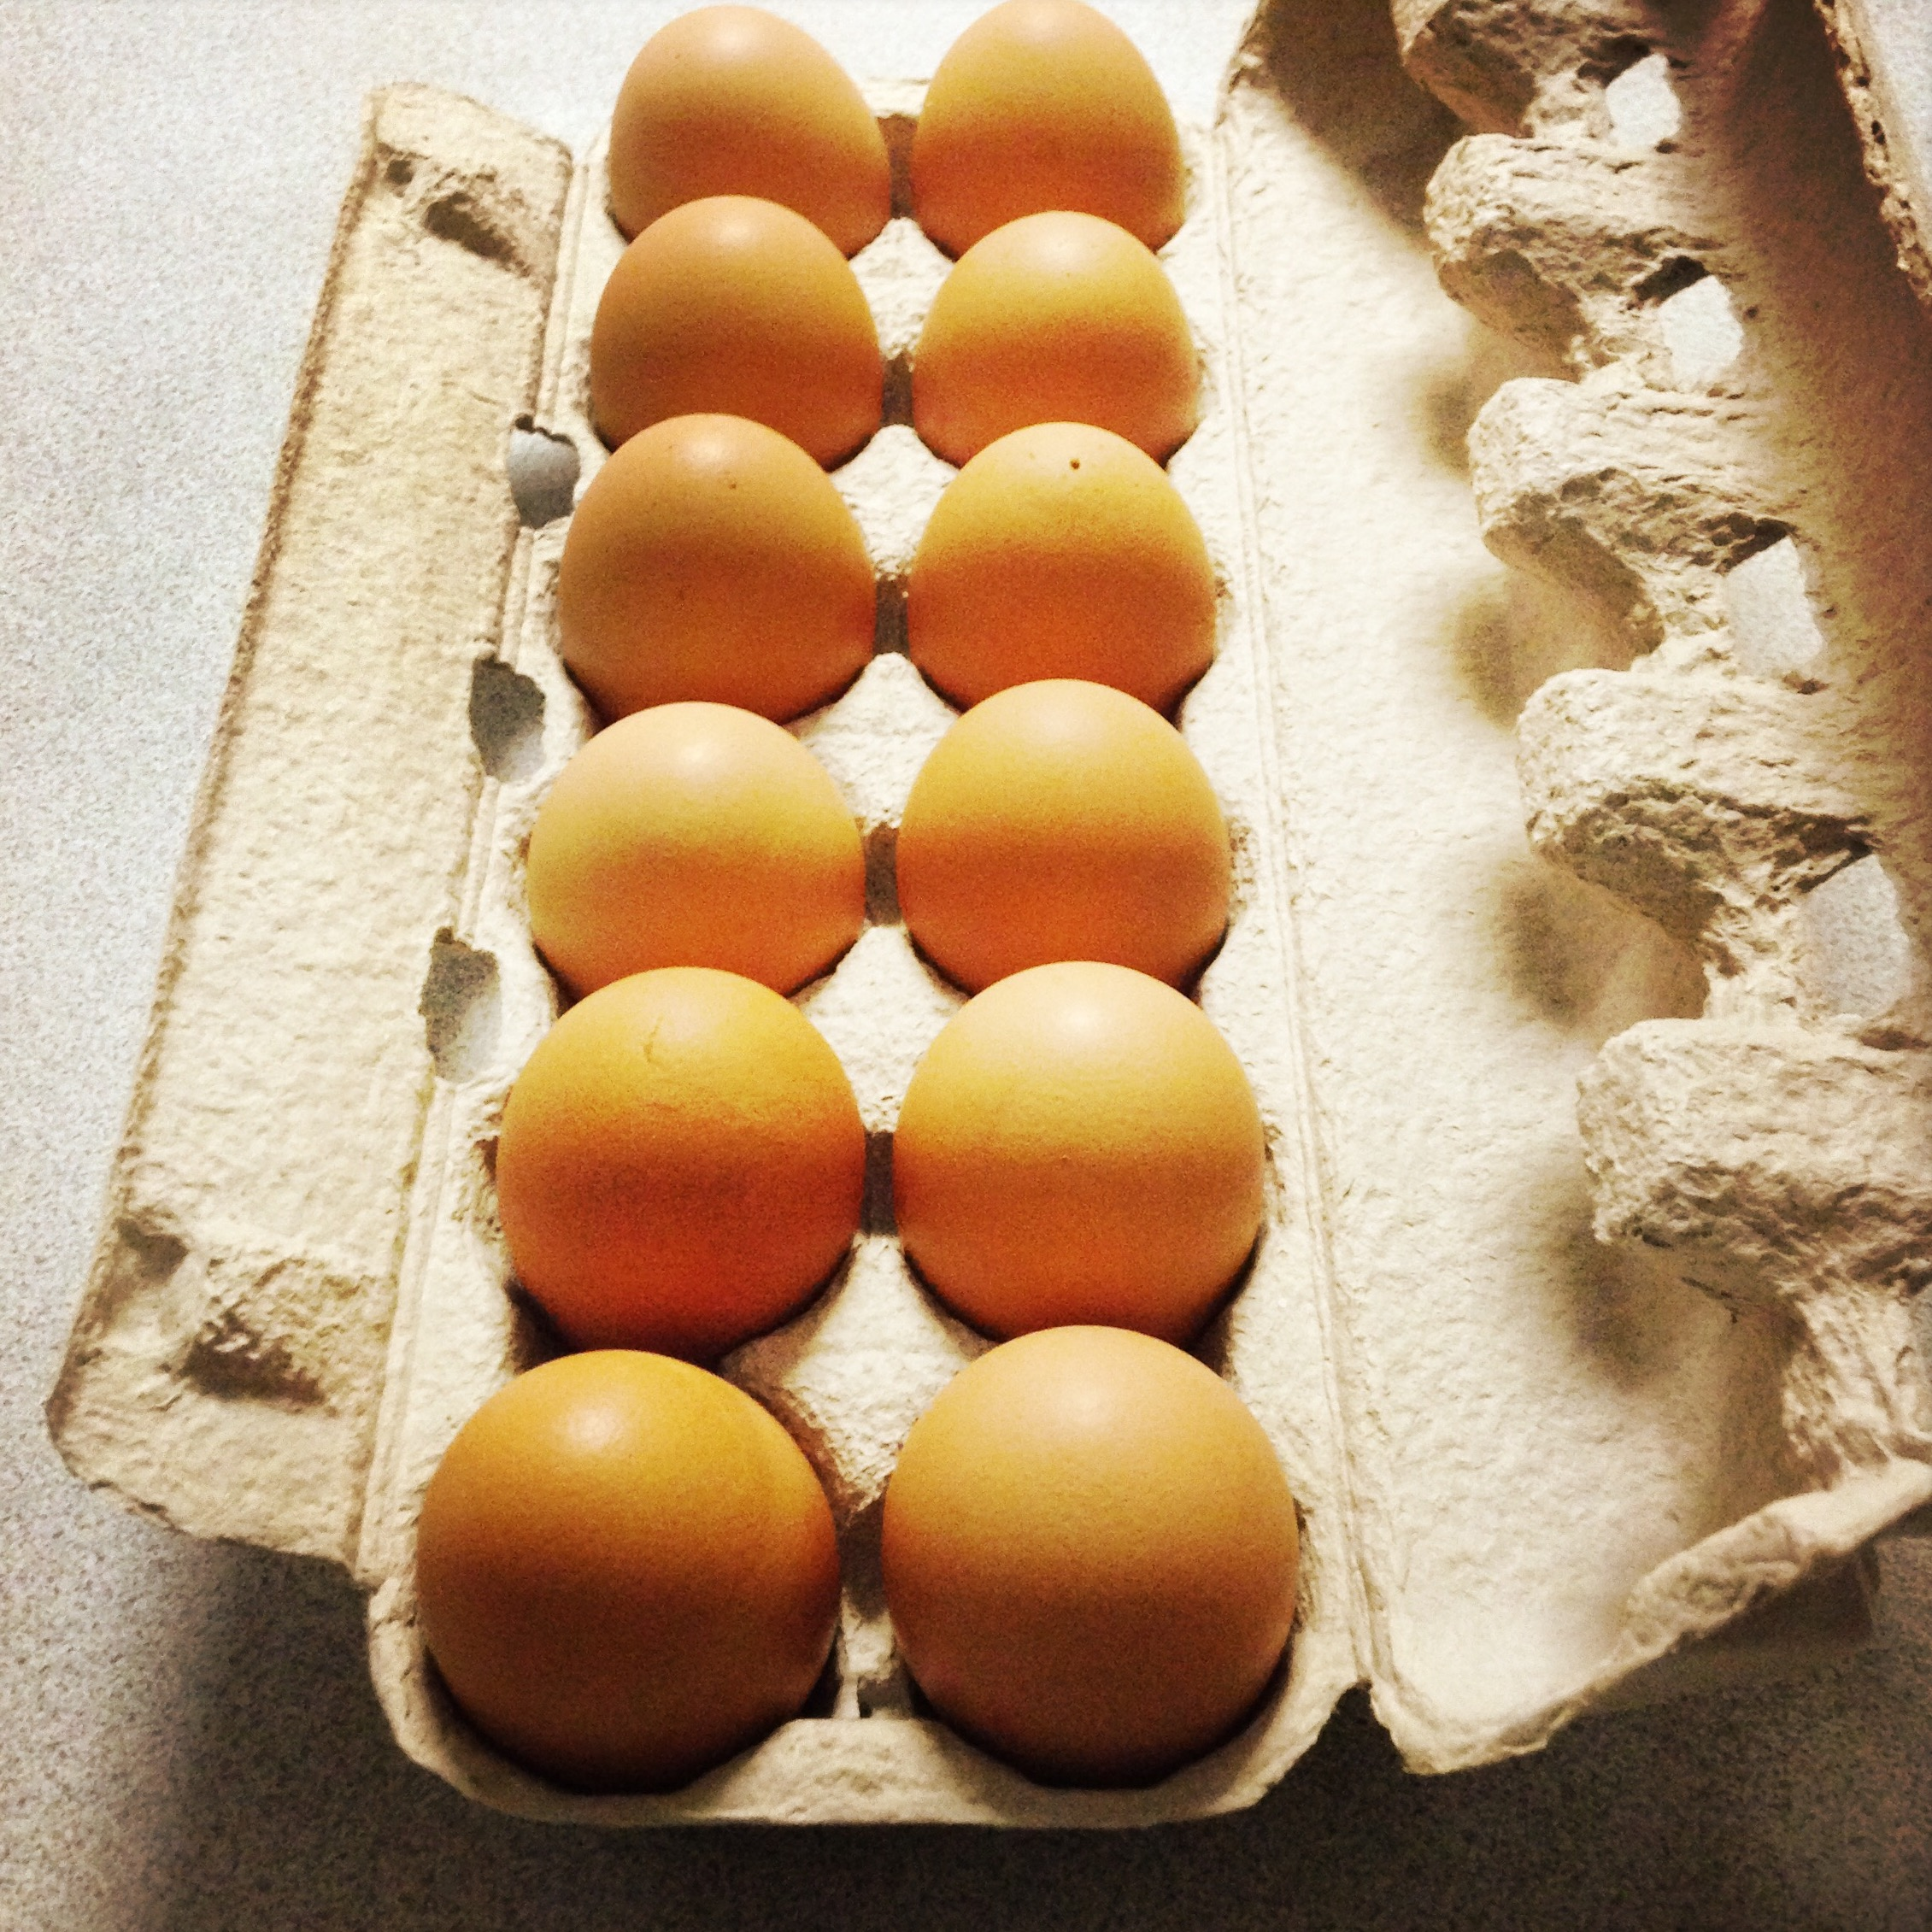 Free range, ethical eggs are worth it.